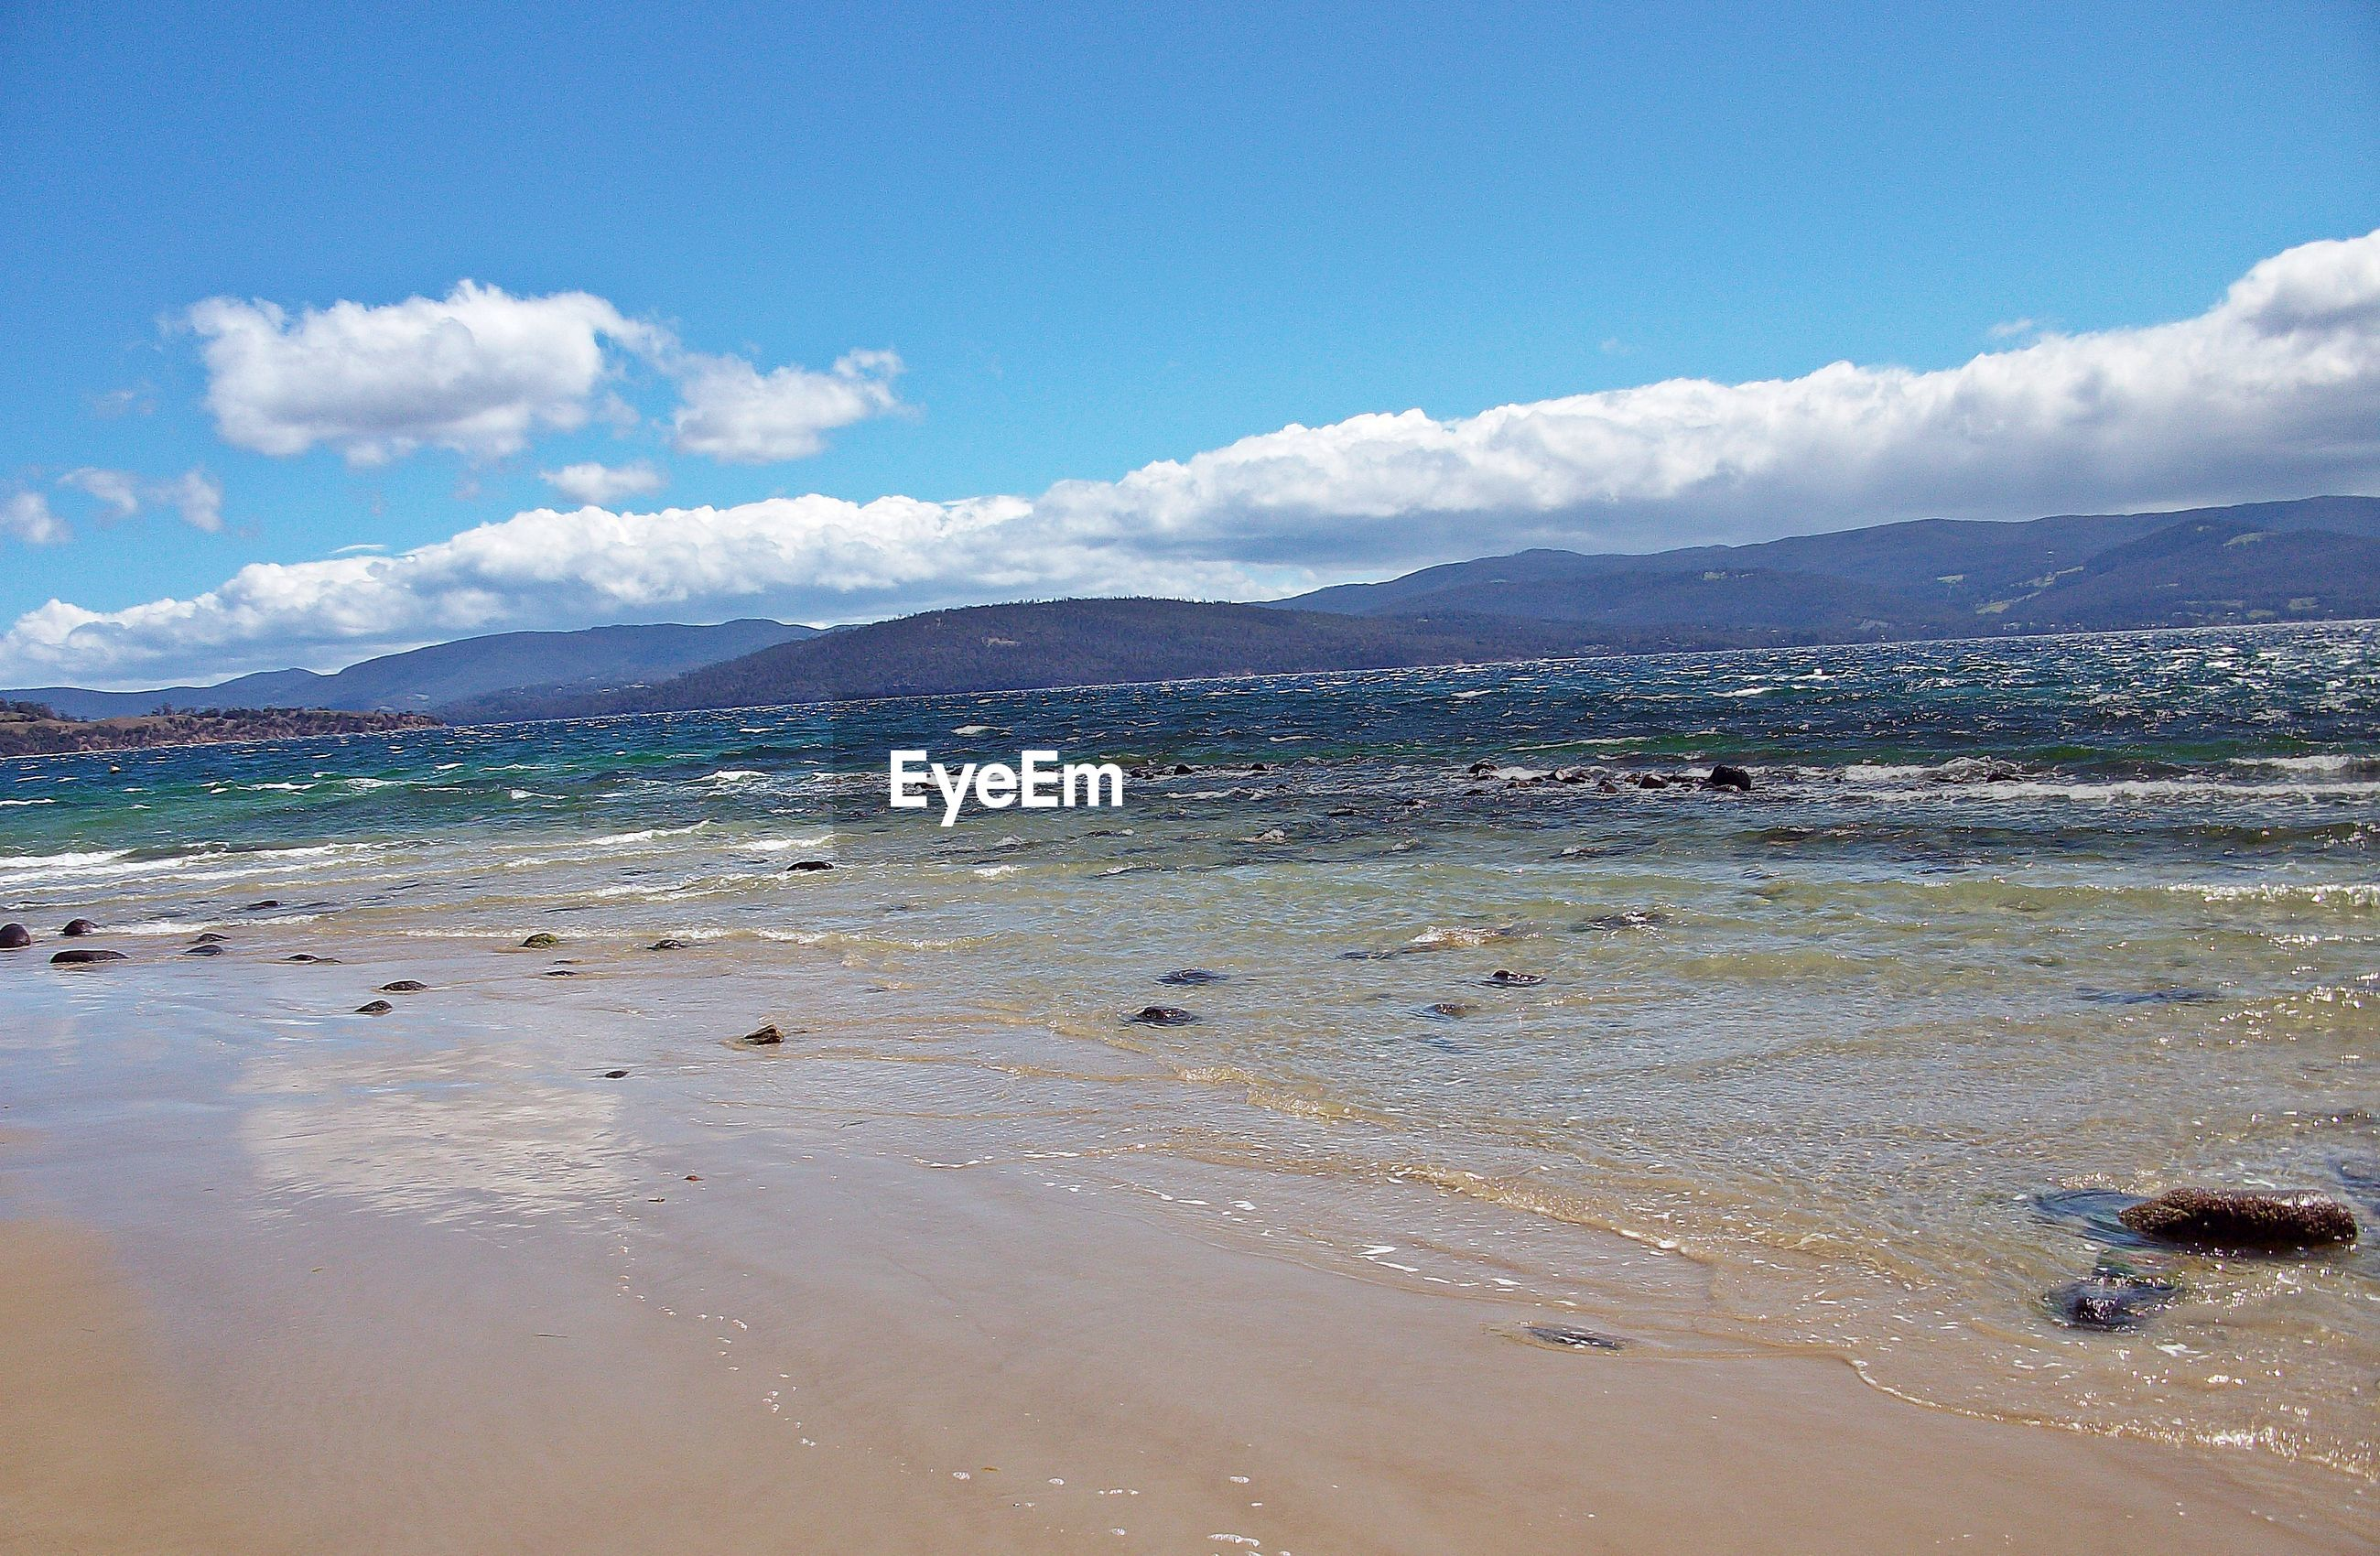 SCENIC VIEW OF BEACH AND MOUNTAINS AGAINST SKY